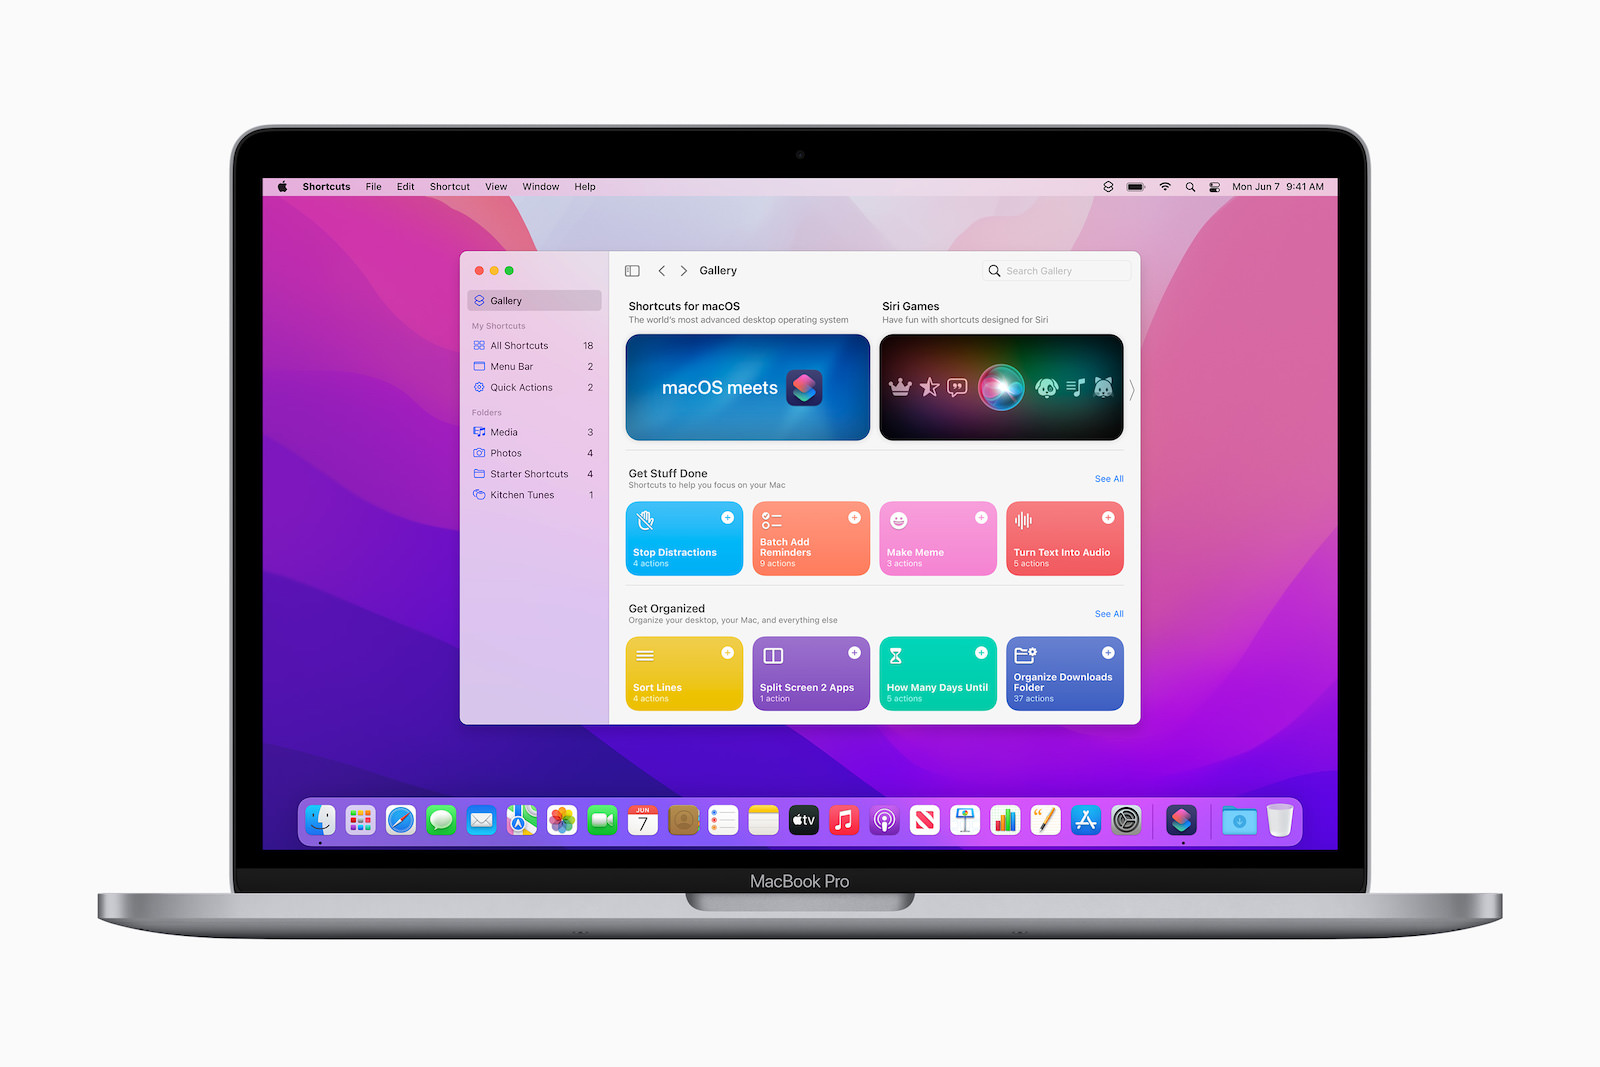 Shorcuts for macOS